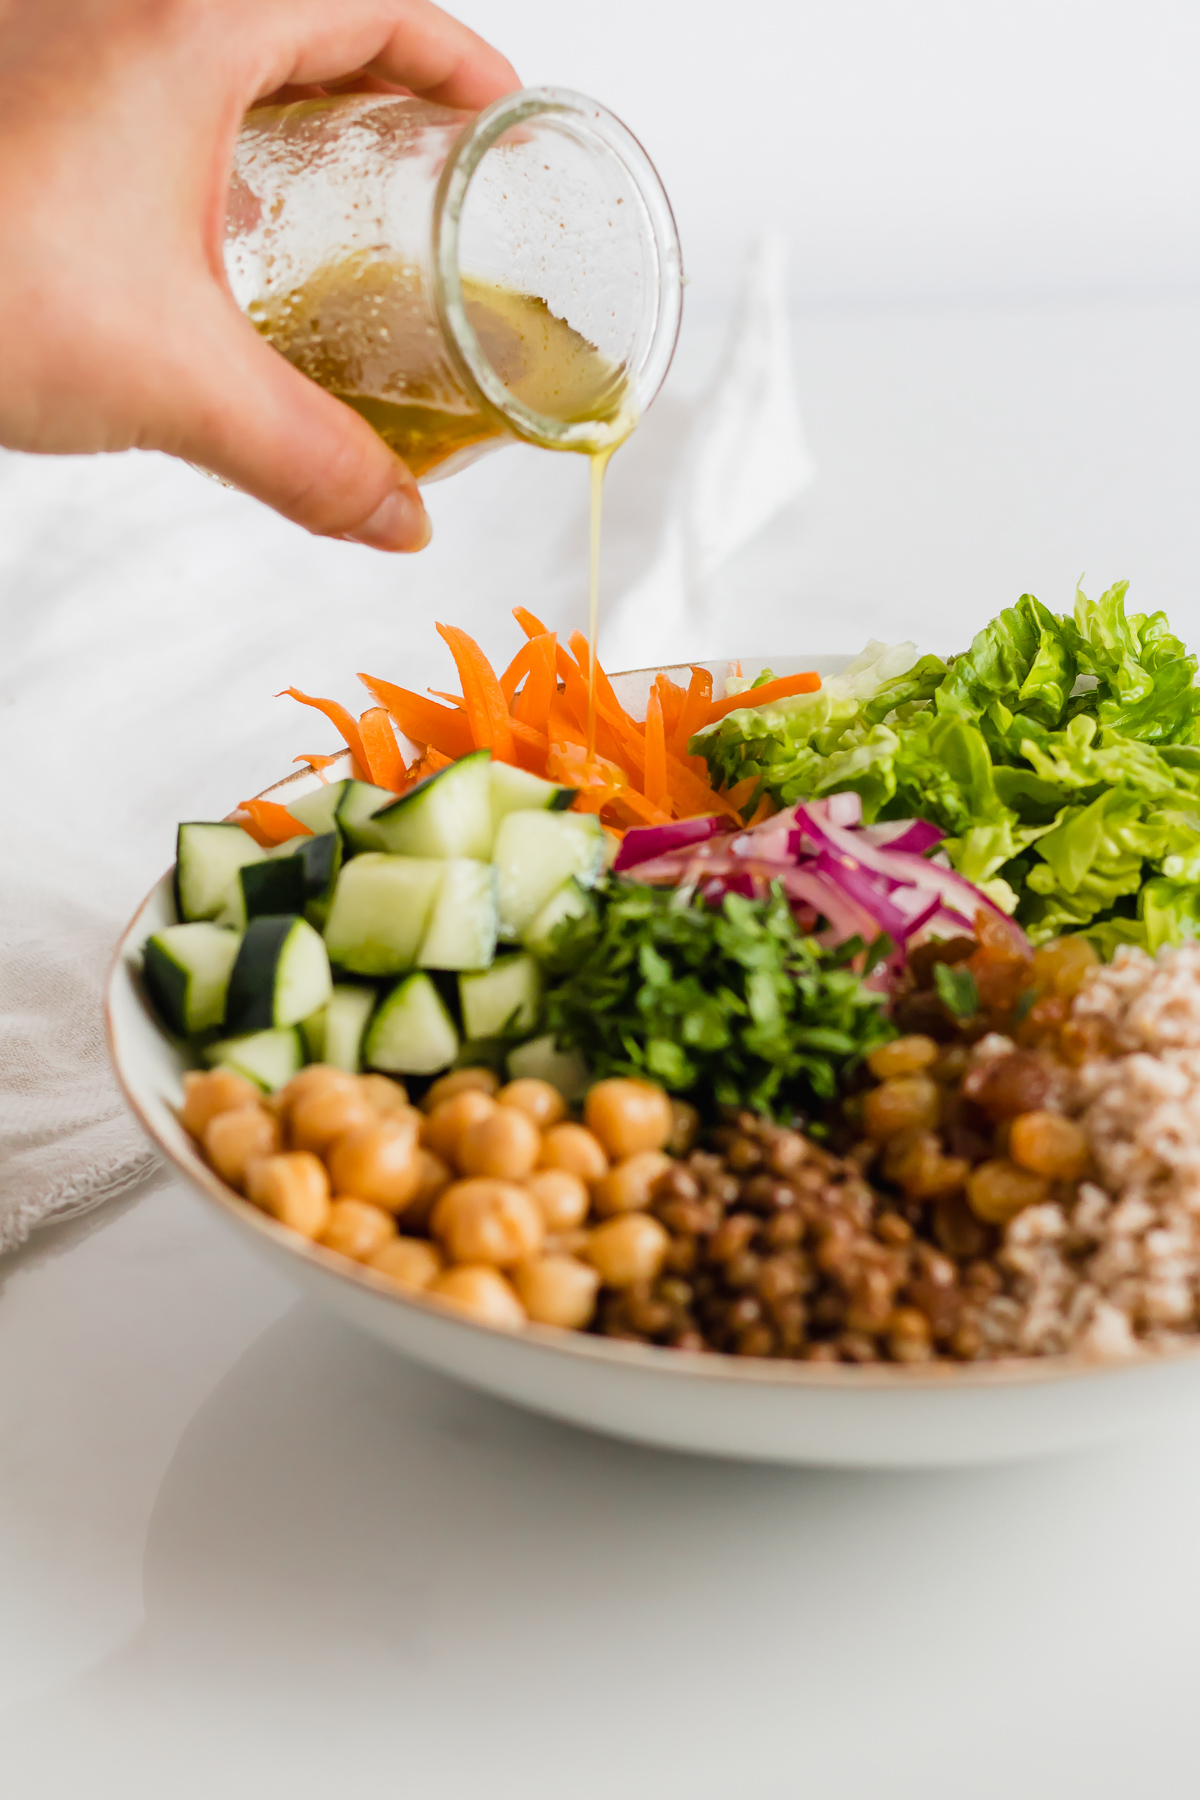 dressing poured over moroccan couscous salad with chickpeas